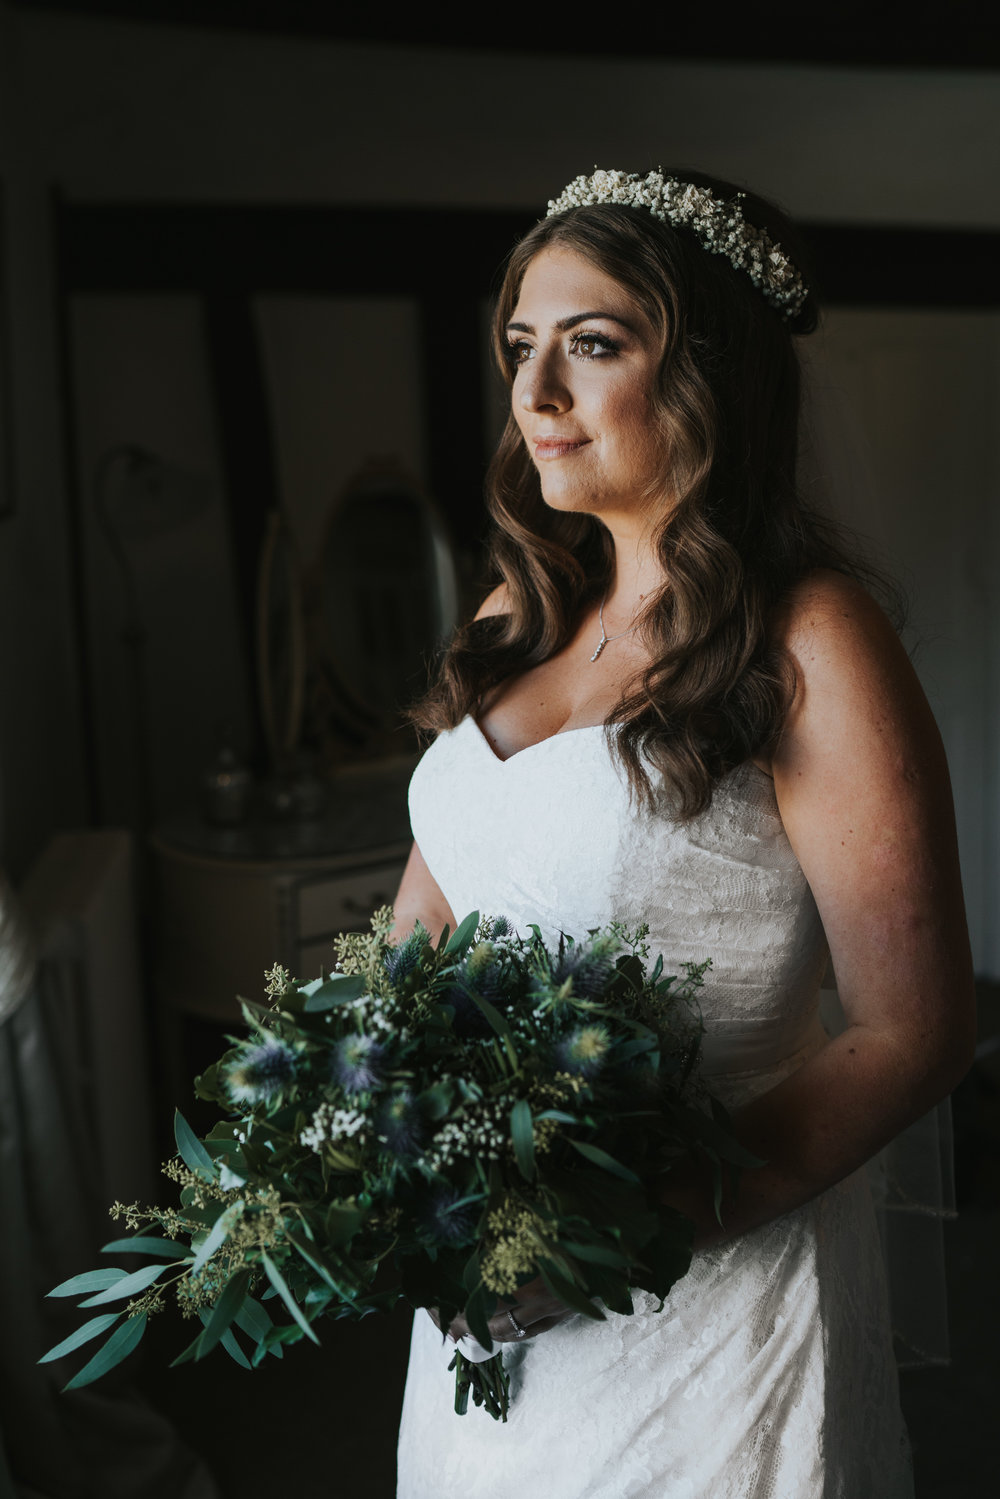 Sophie-Christian-Prested-Hall-DIY-Boho-Outdoor-Wedding-Grace-Elizabeth-Alternative-Wedding-Photographer-Colchester-Essex (12 of 113).jpg